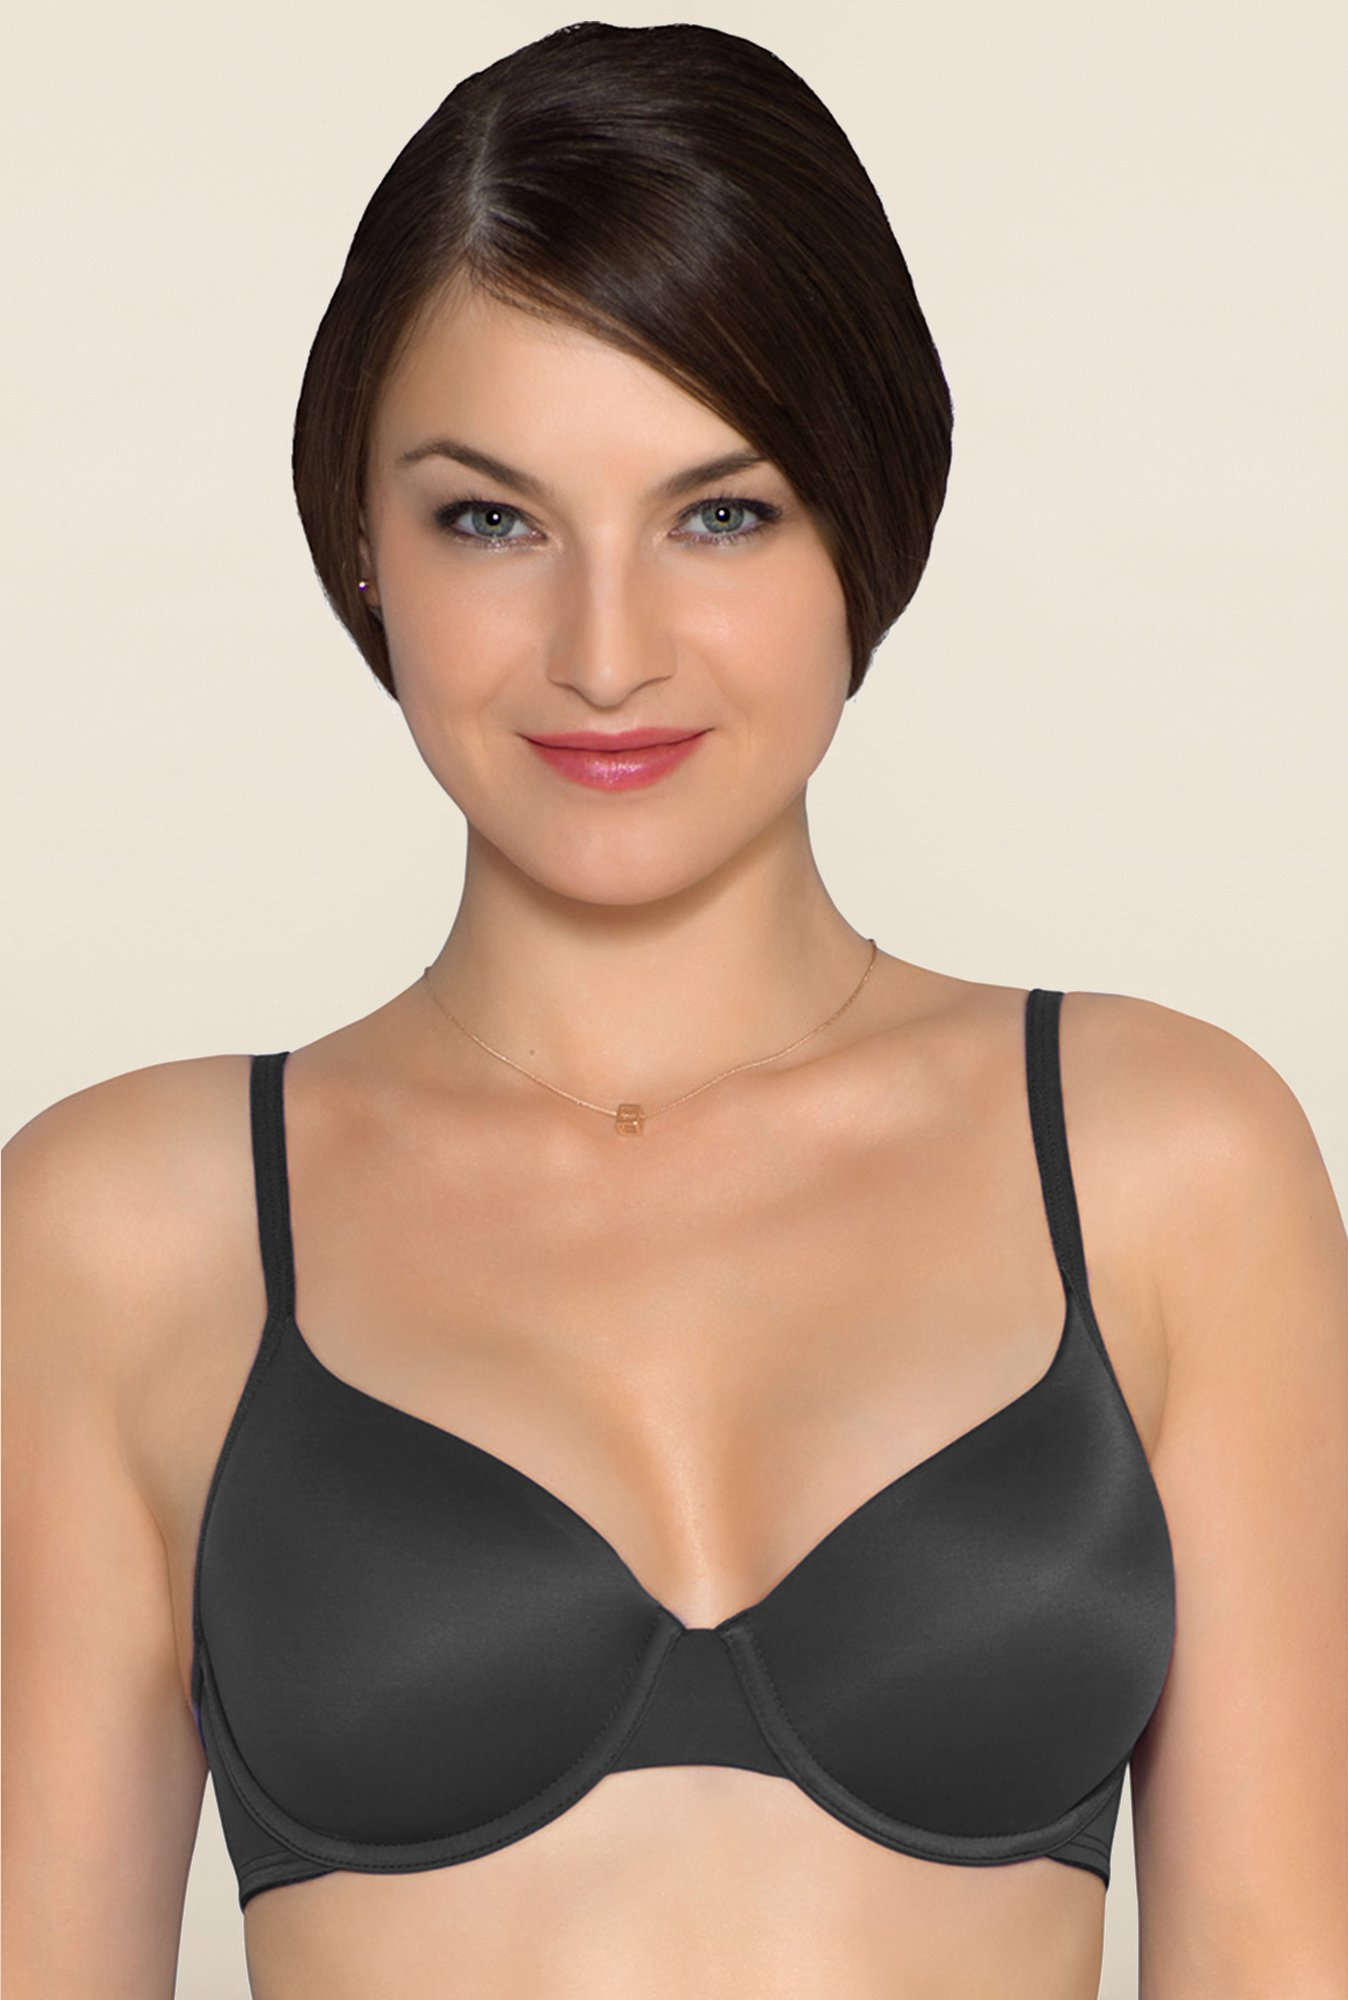 Amante Black Underwired Seamless Bra